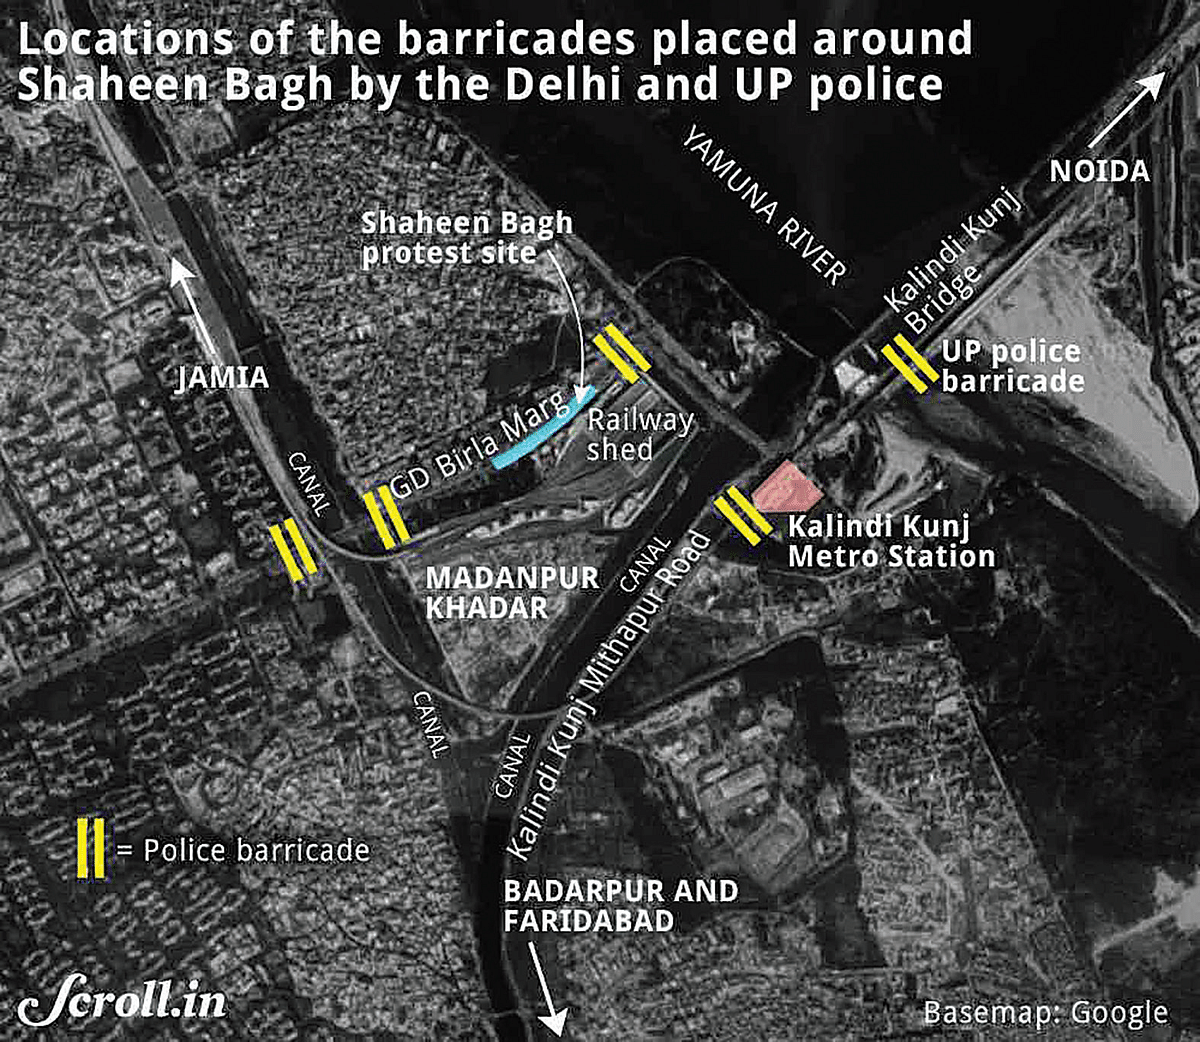 Reporting from Ground Zero: first-person account from Delhi's Shaheen Bagh